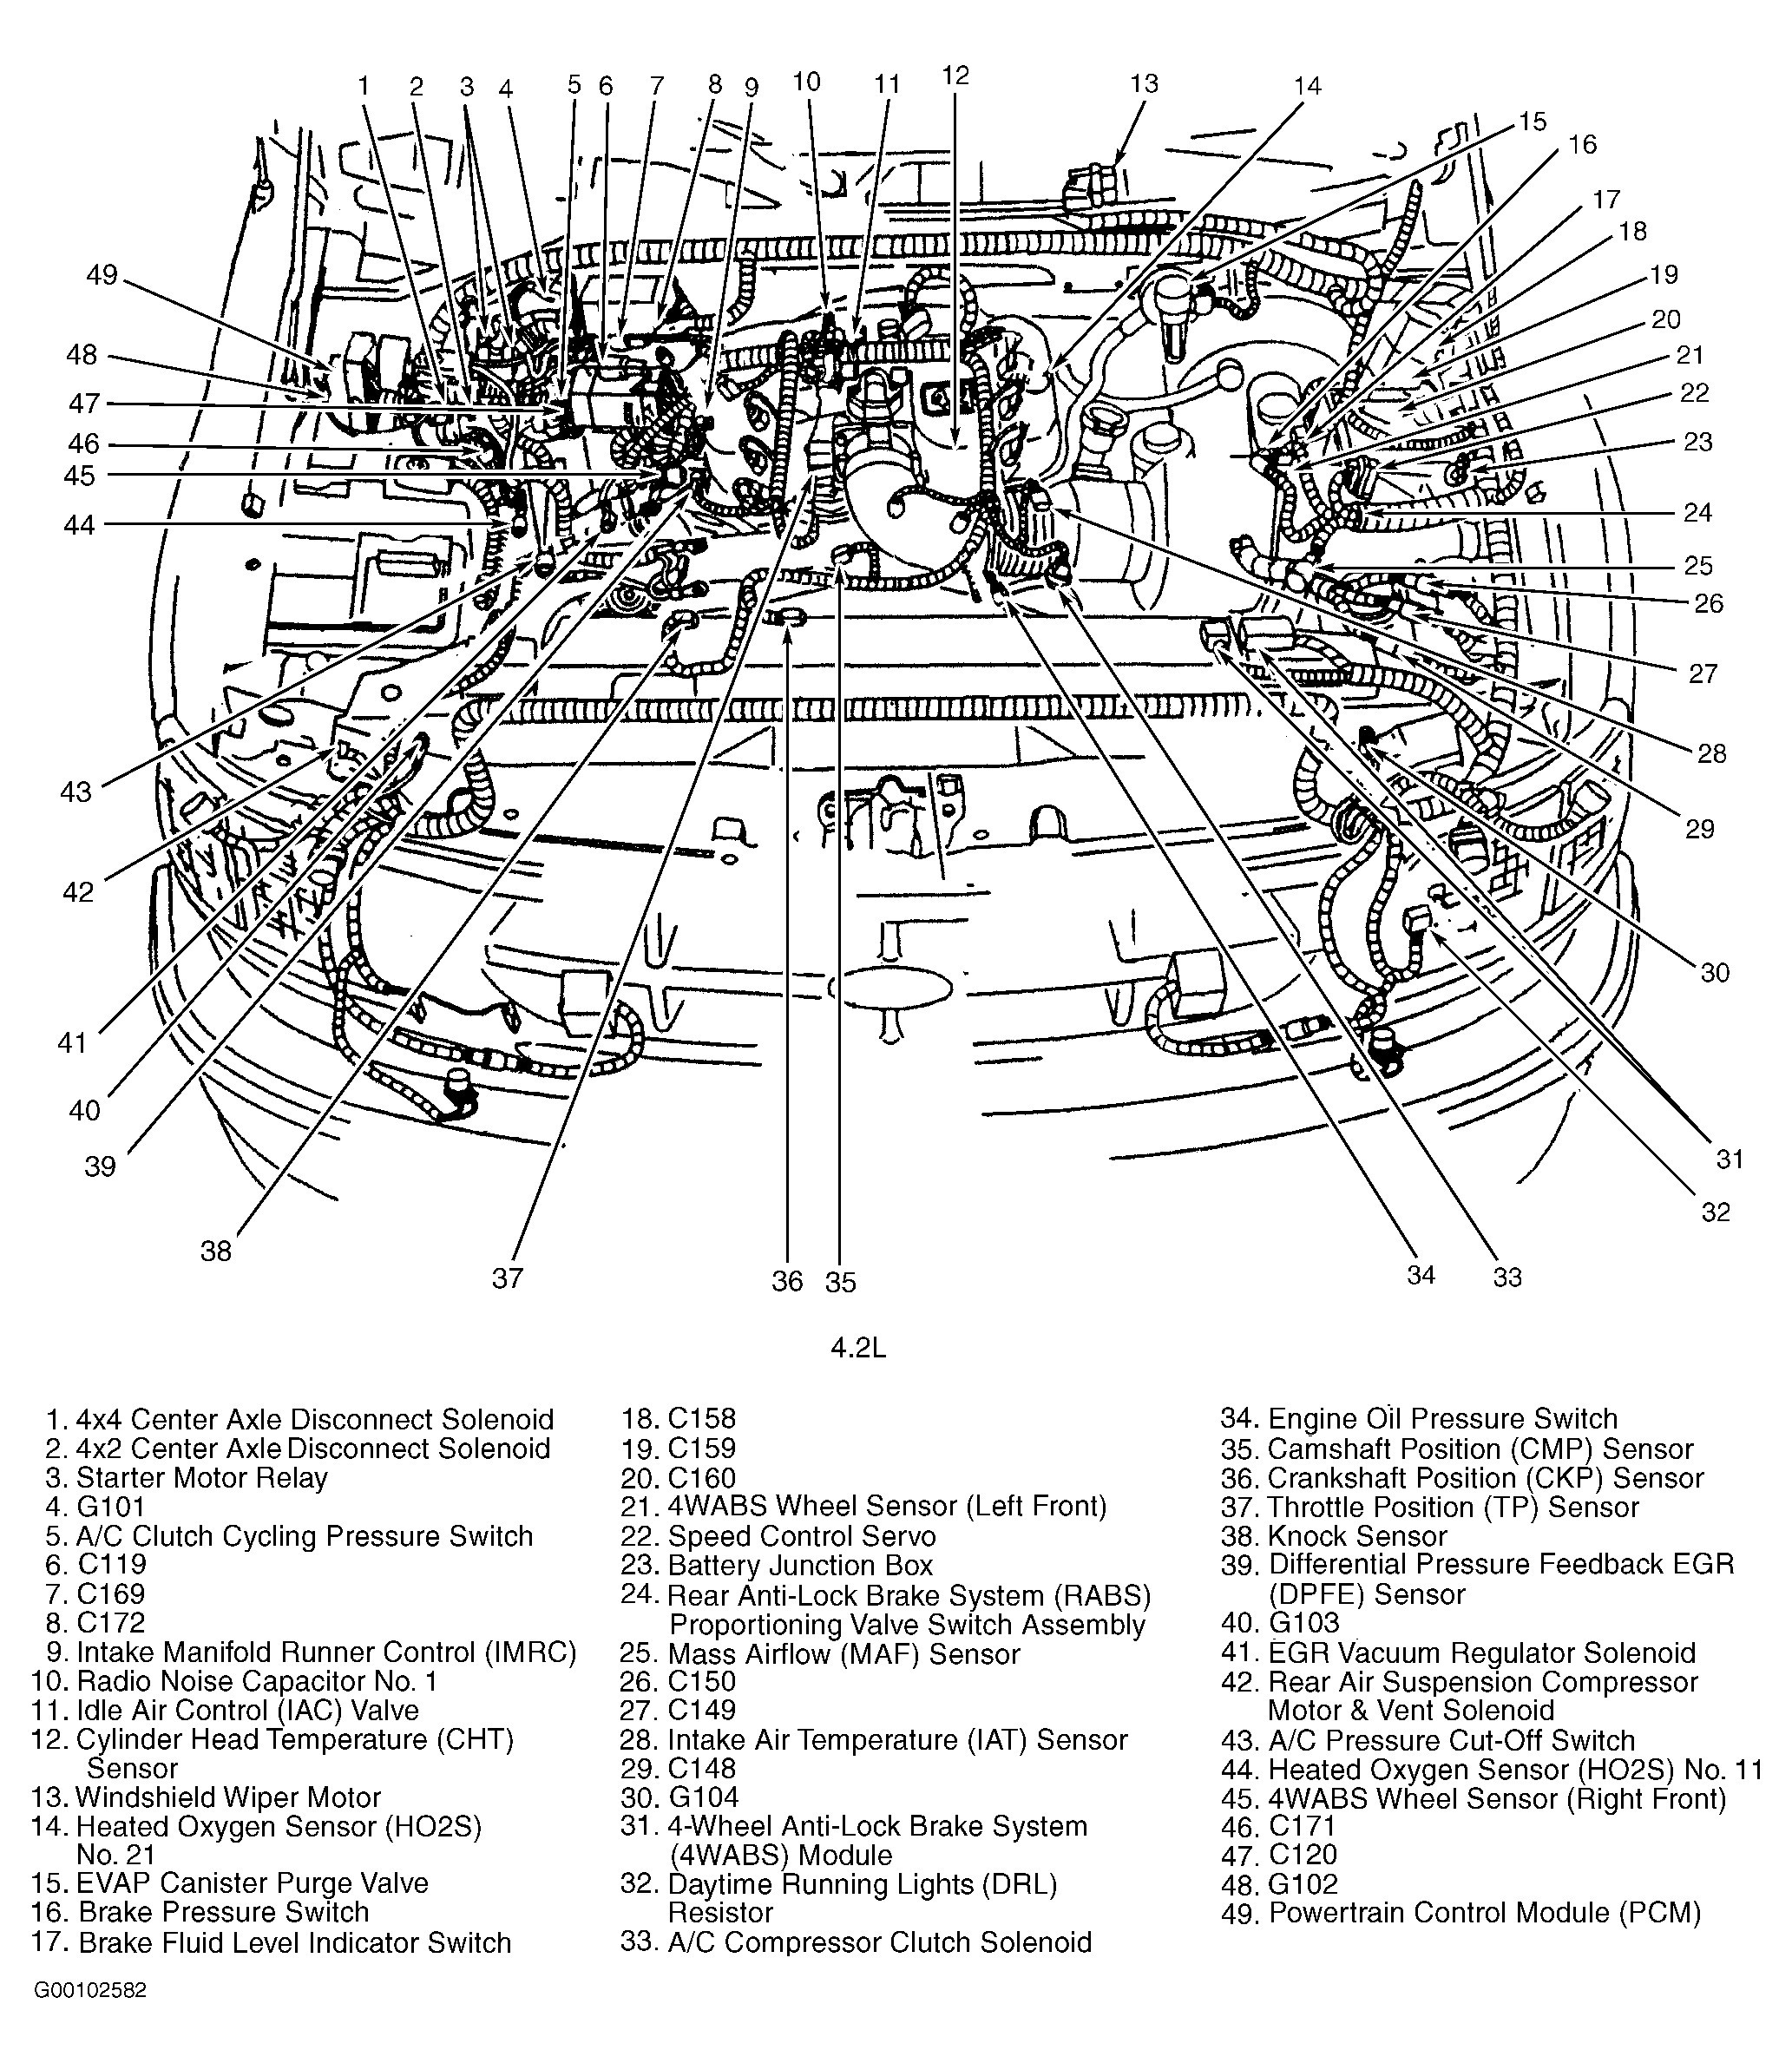 Ford 5 4 L Engine Diagram 50 ford 5 4 Firing order Ll2t – Shahifo Of Ford 5 4 L Engine Diagram 1999 F150 Engine Wiring Data Wiring Diagrams •